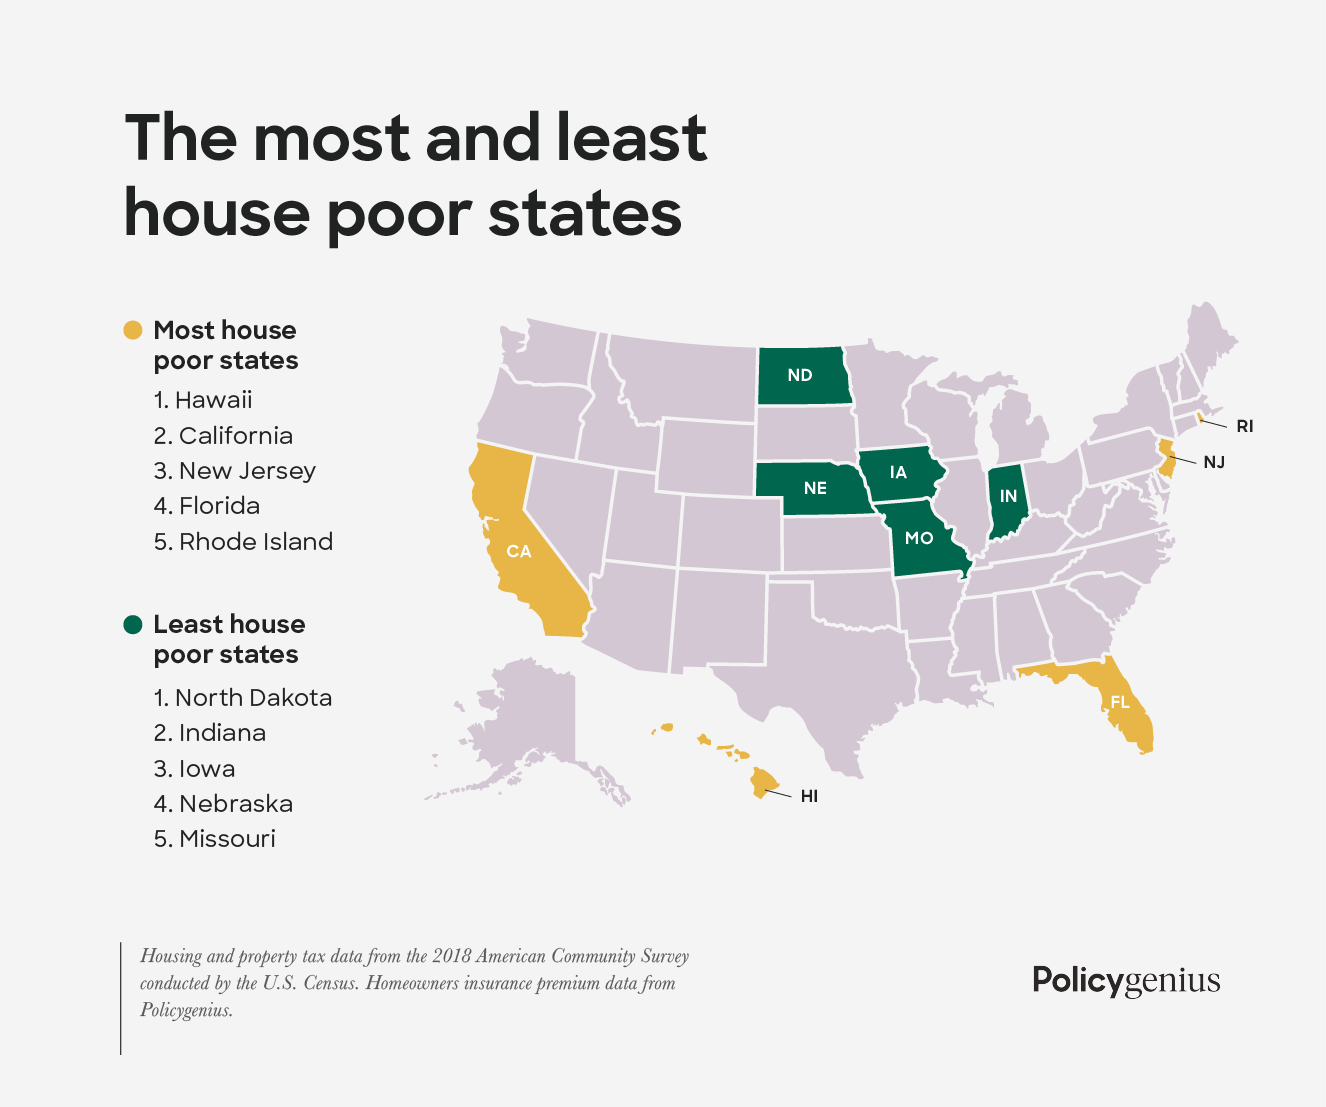 A Map of the Most and Least House Poor States